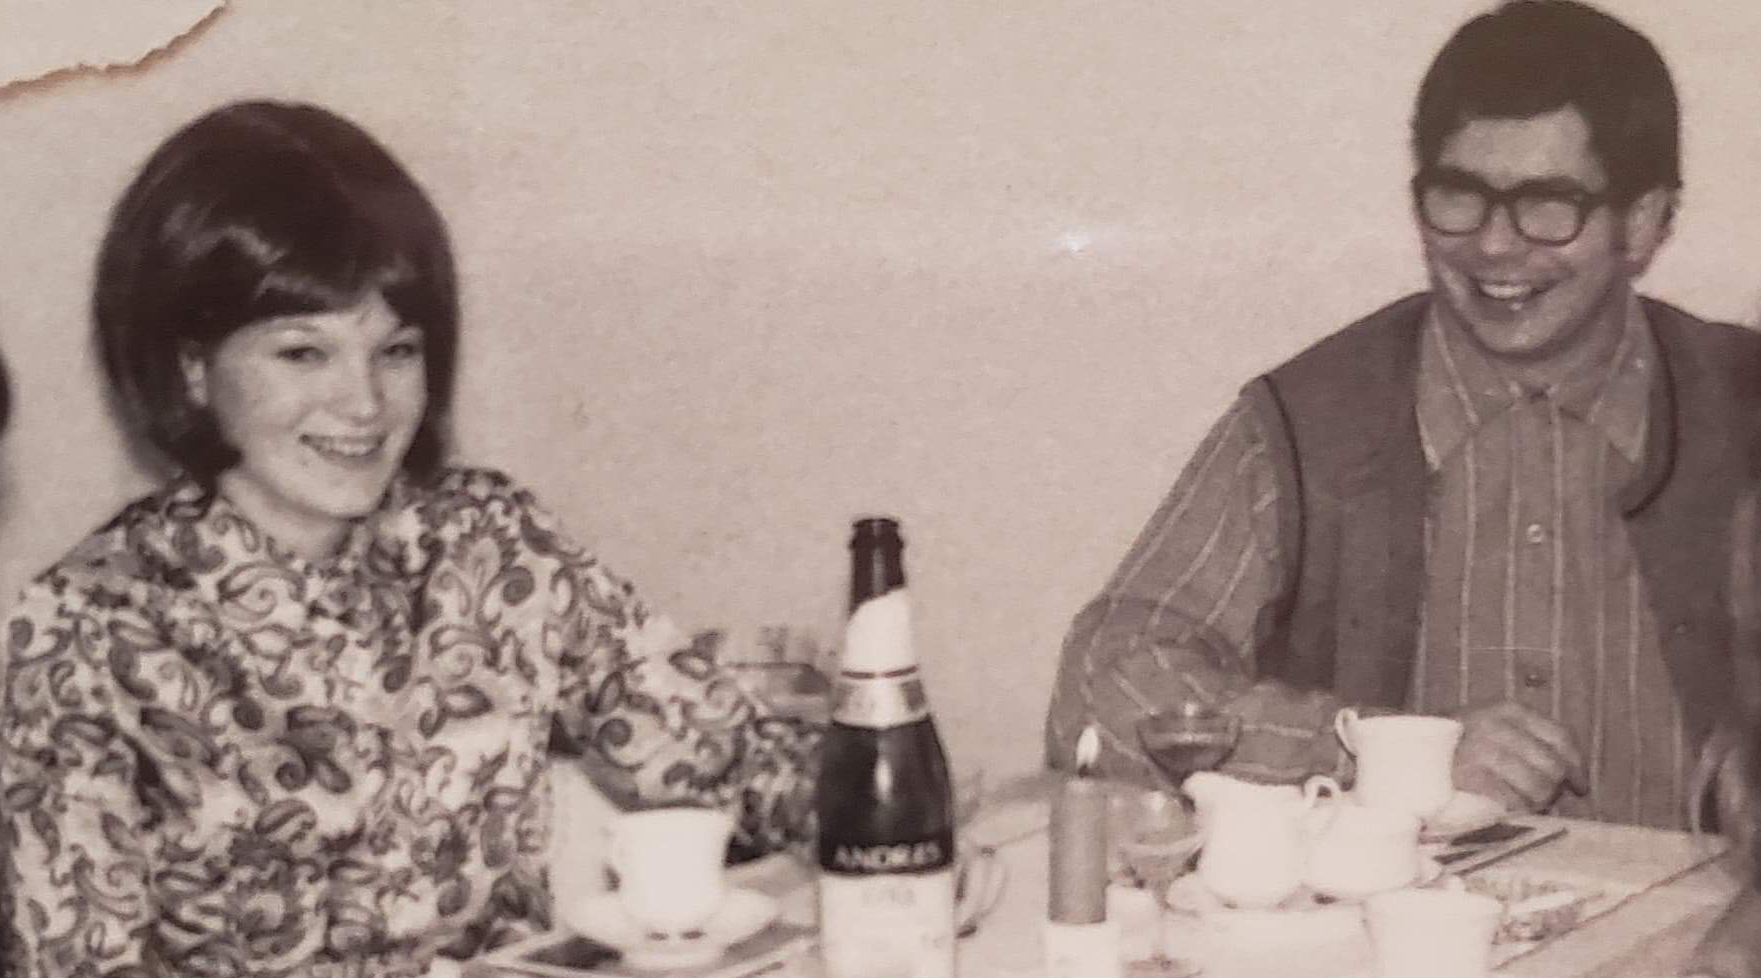 complicated love story- a couple photographed at a table together in 1970